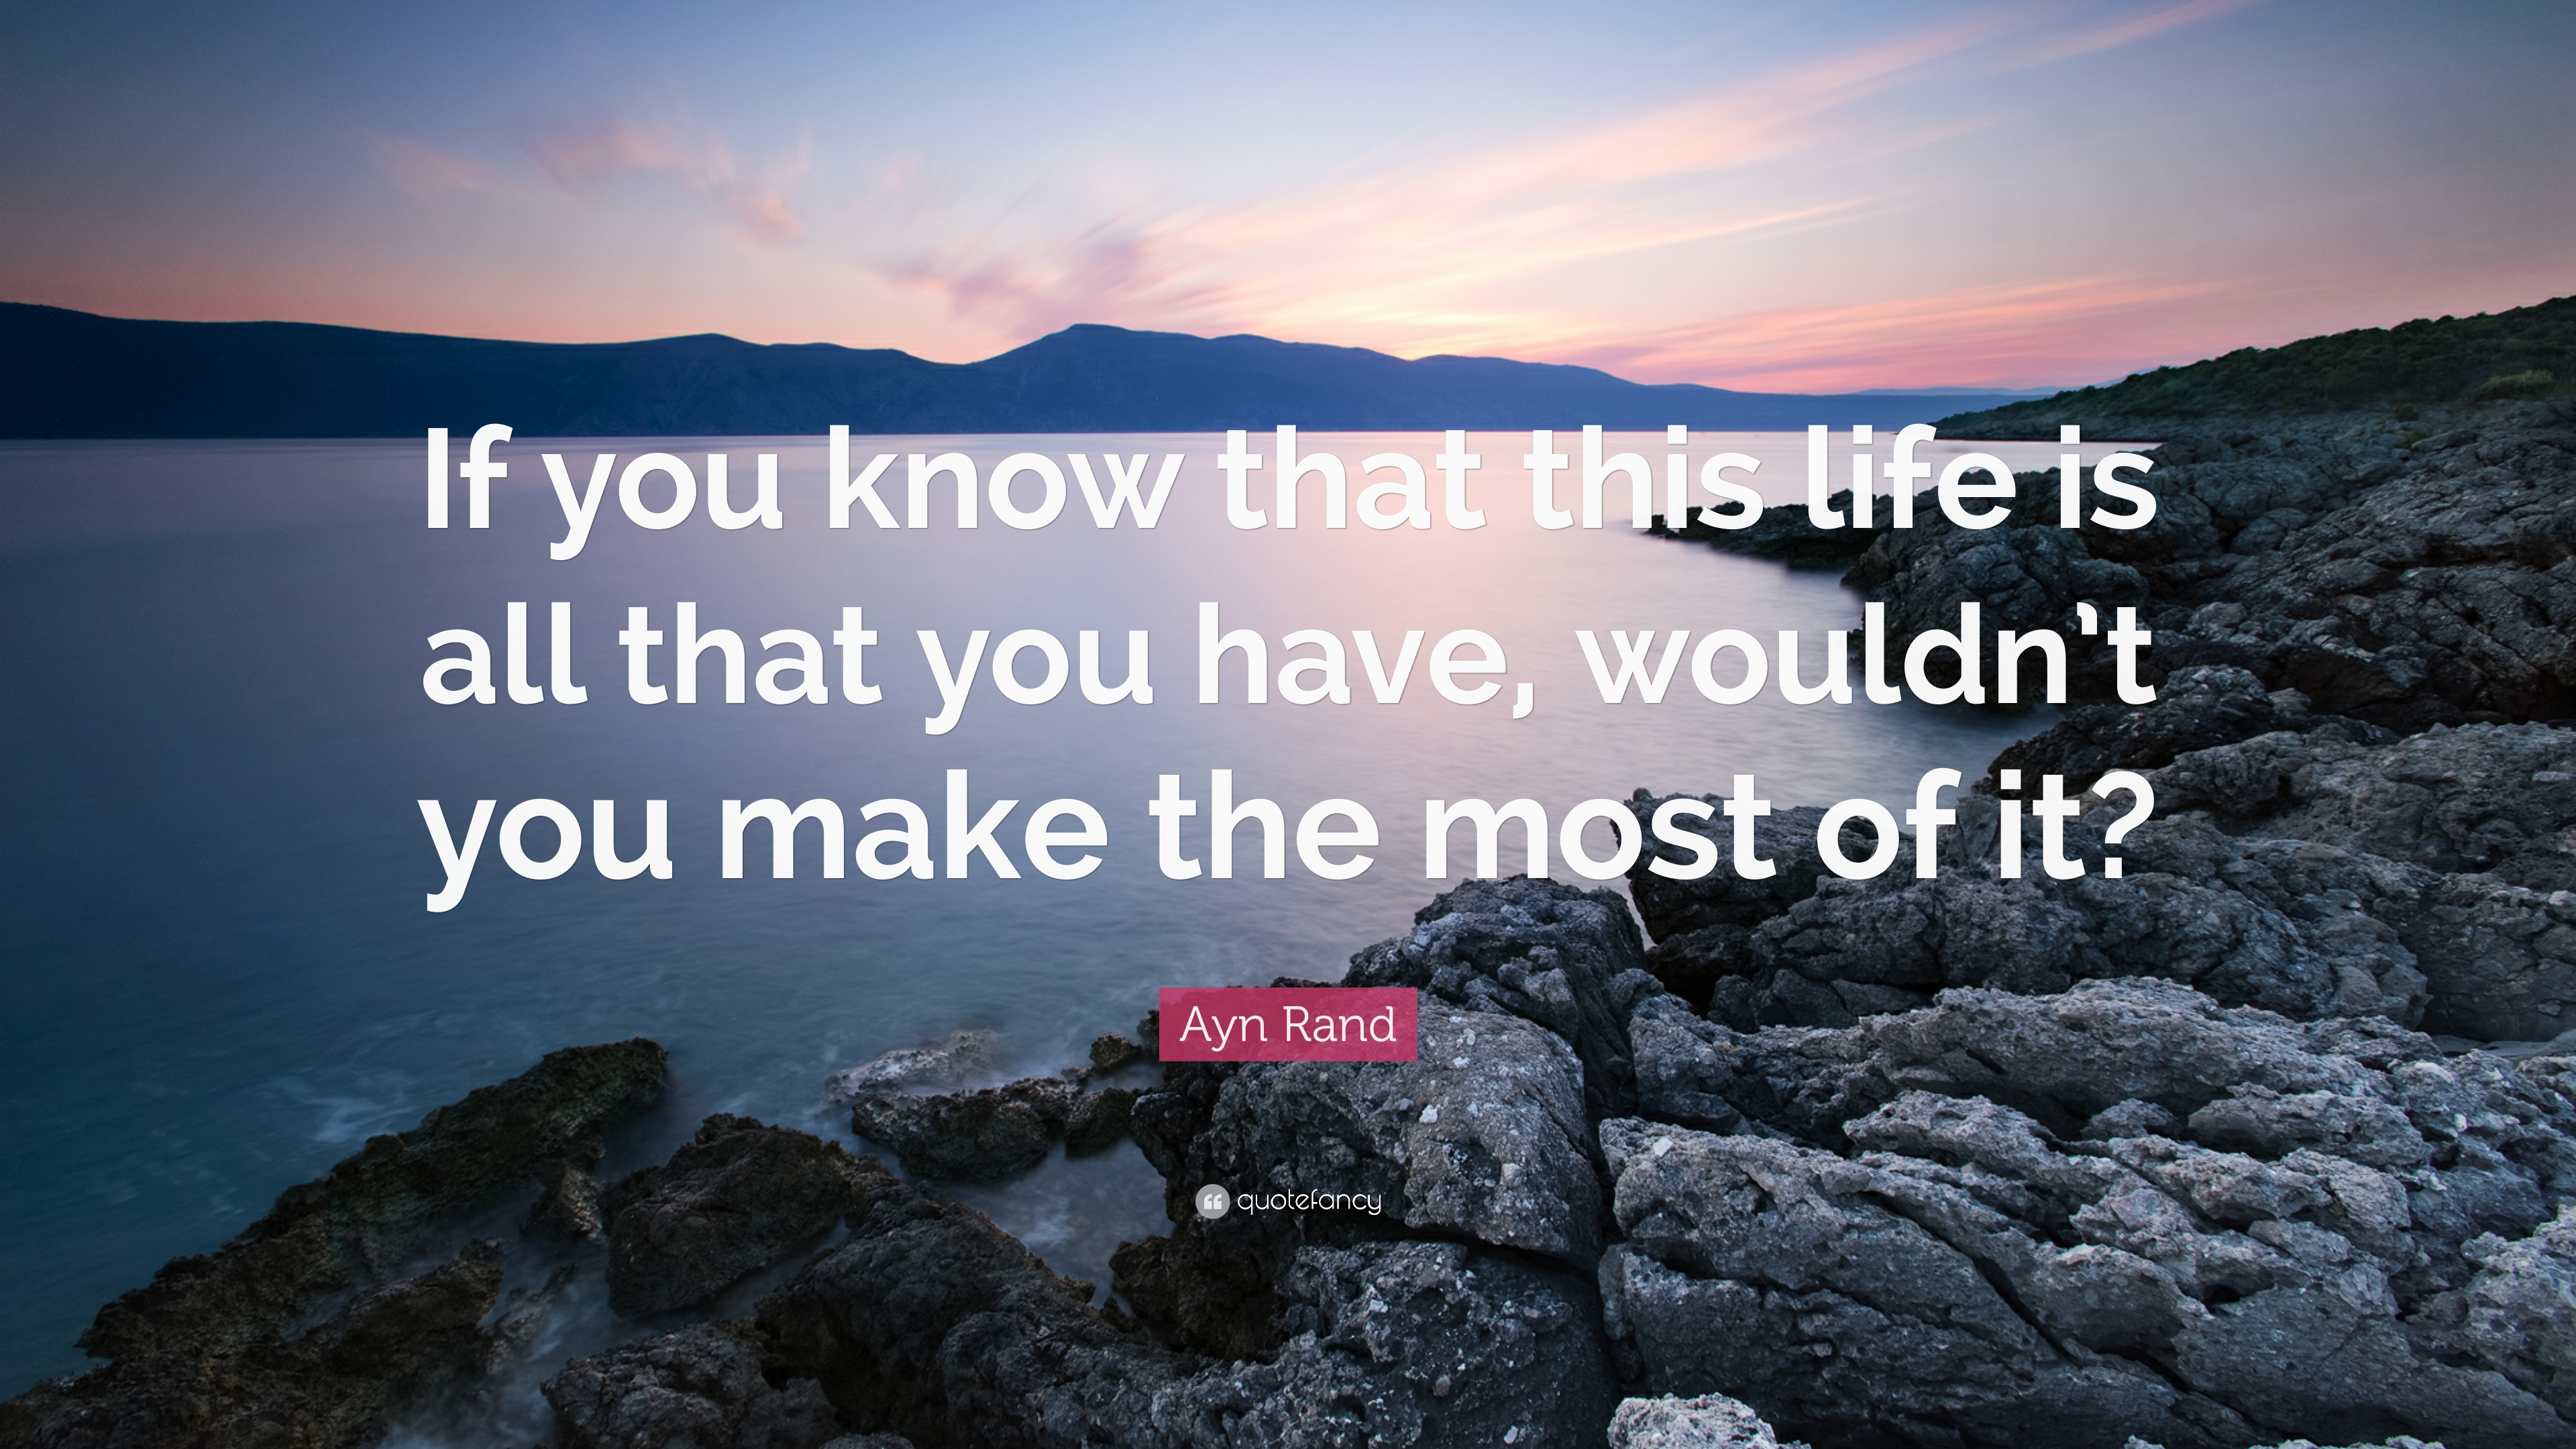 Ayn Rand Quote If You Know That This Life Is All That You Have